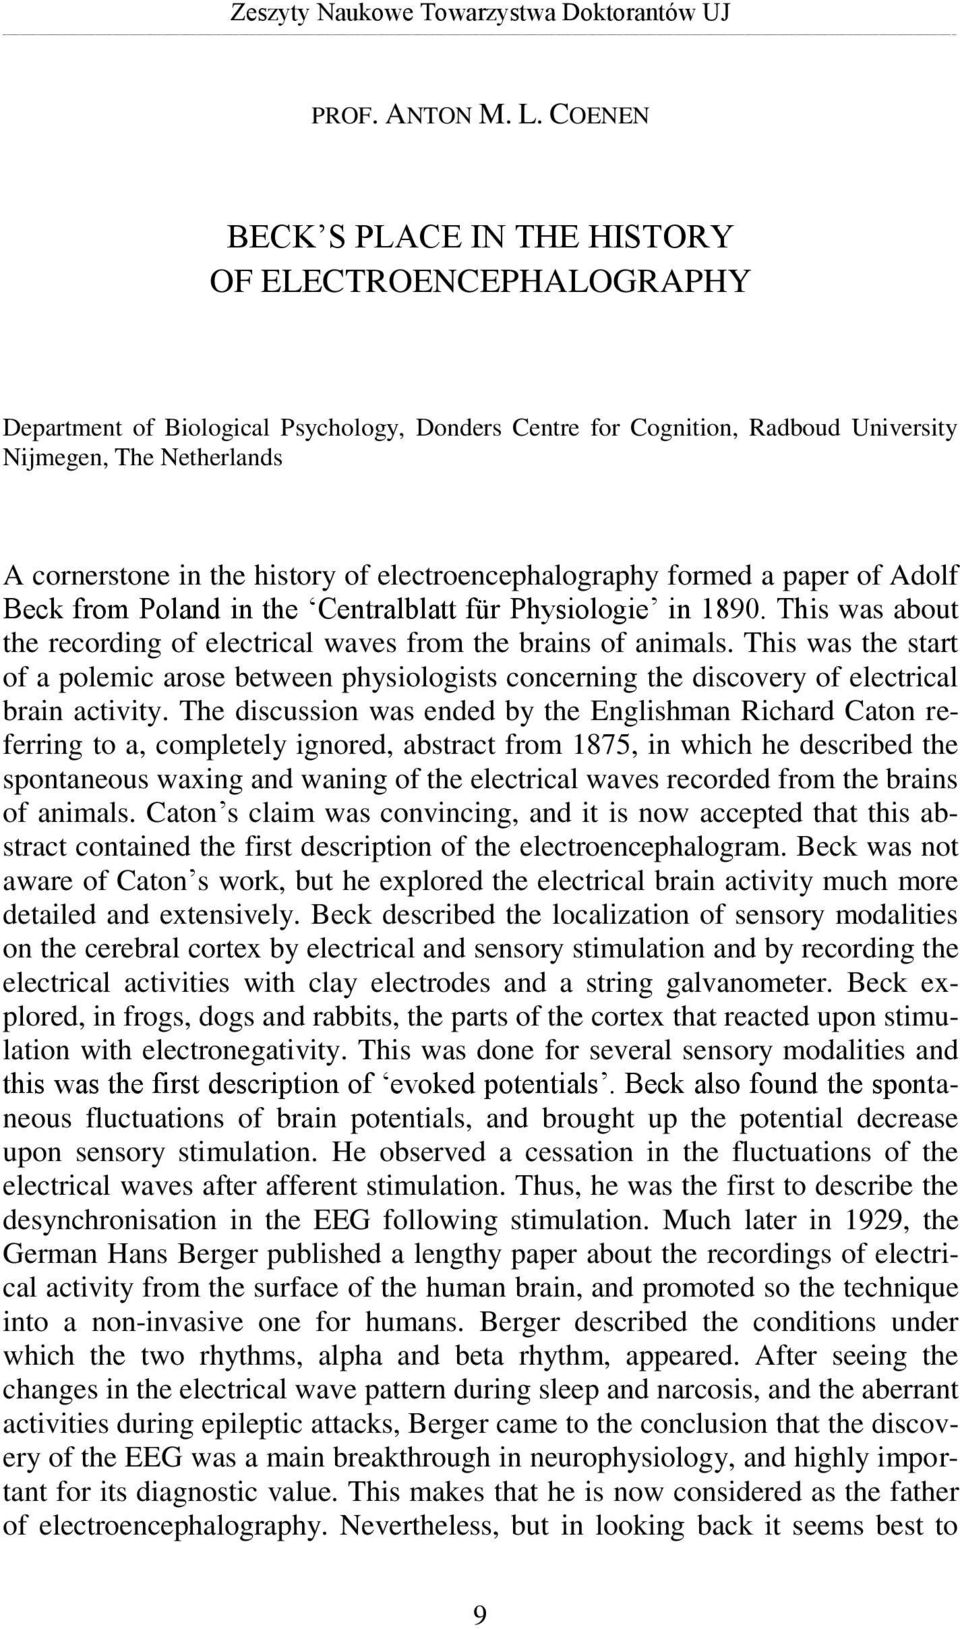 history of electroencephalography formed a paper of Adolf Beck from Poland in the Centralblatt für Physiologie in 1890. This was about the recording of electrical waves from the brains of animals.